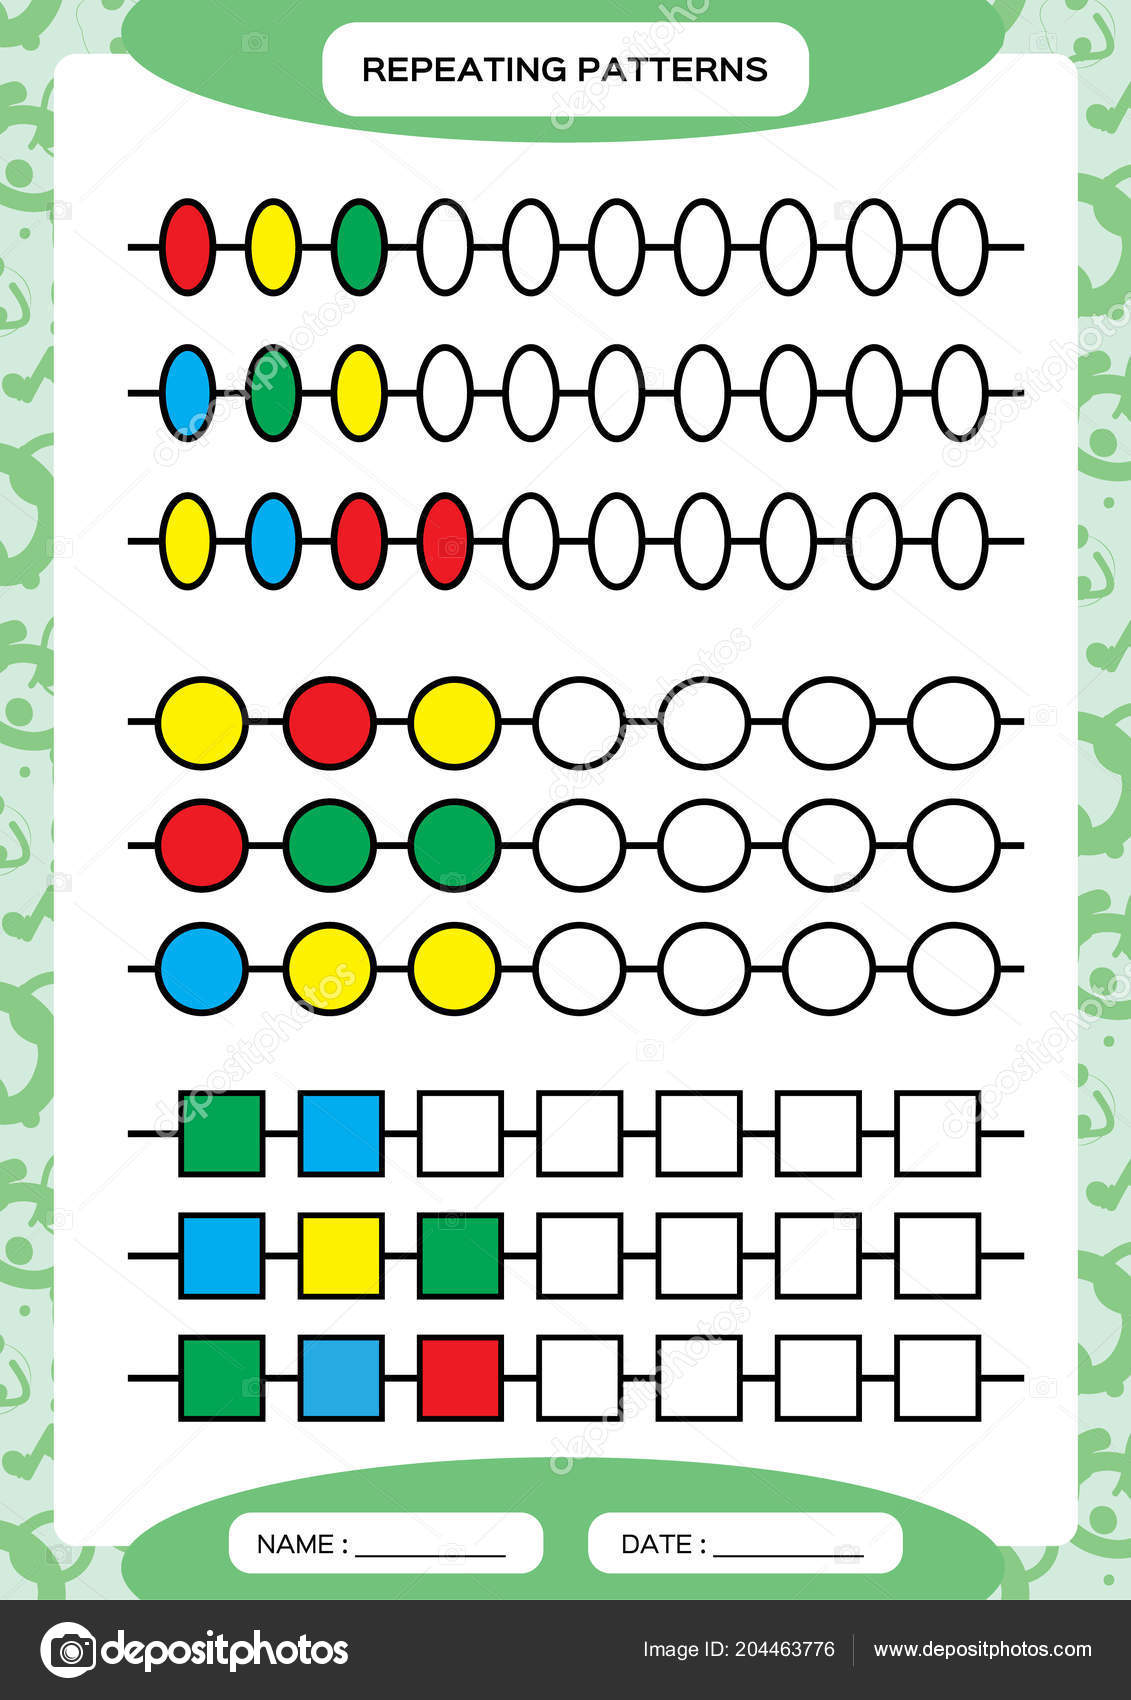 Complete Repeating Patterns Worksheet Preschool Kids